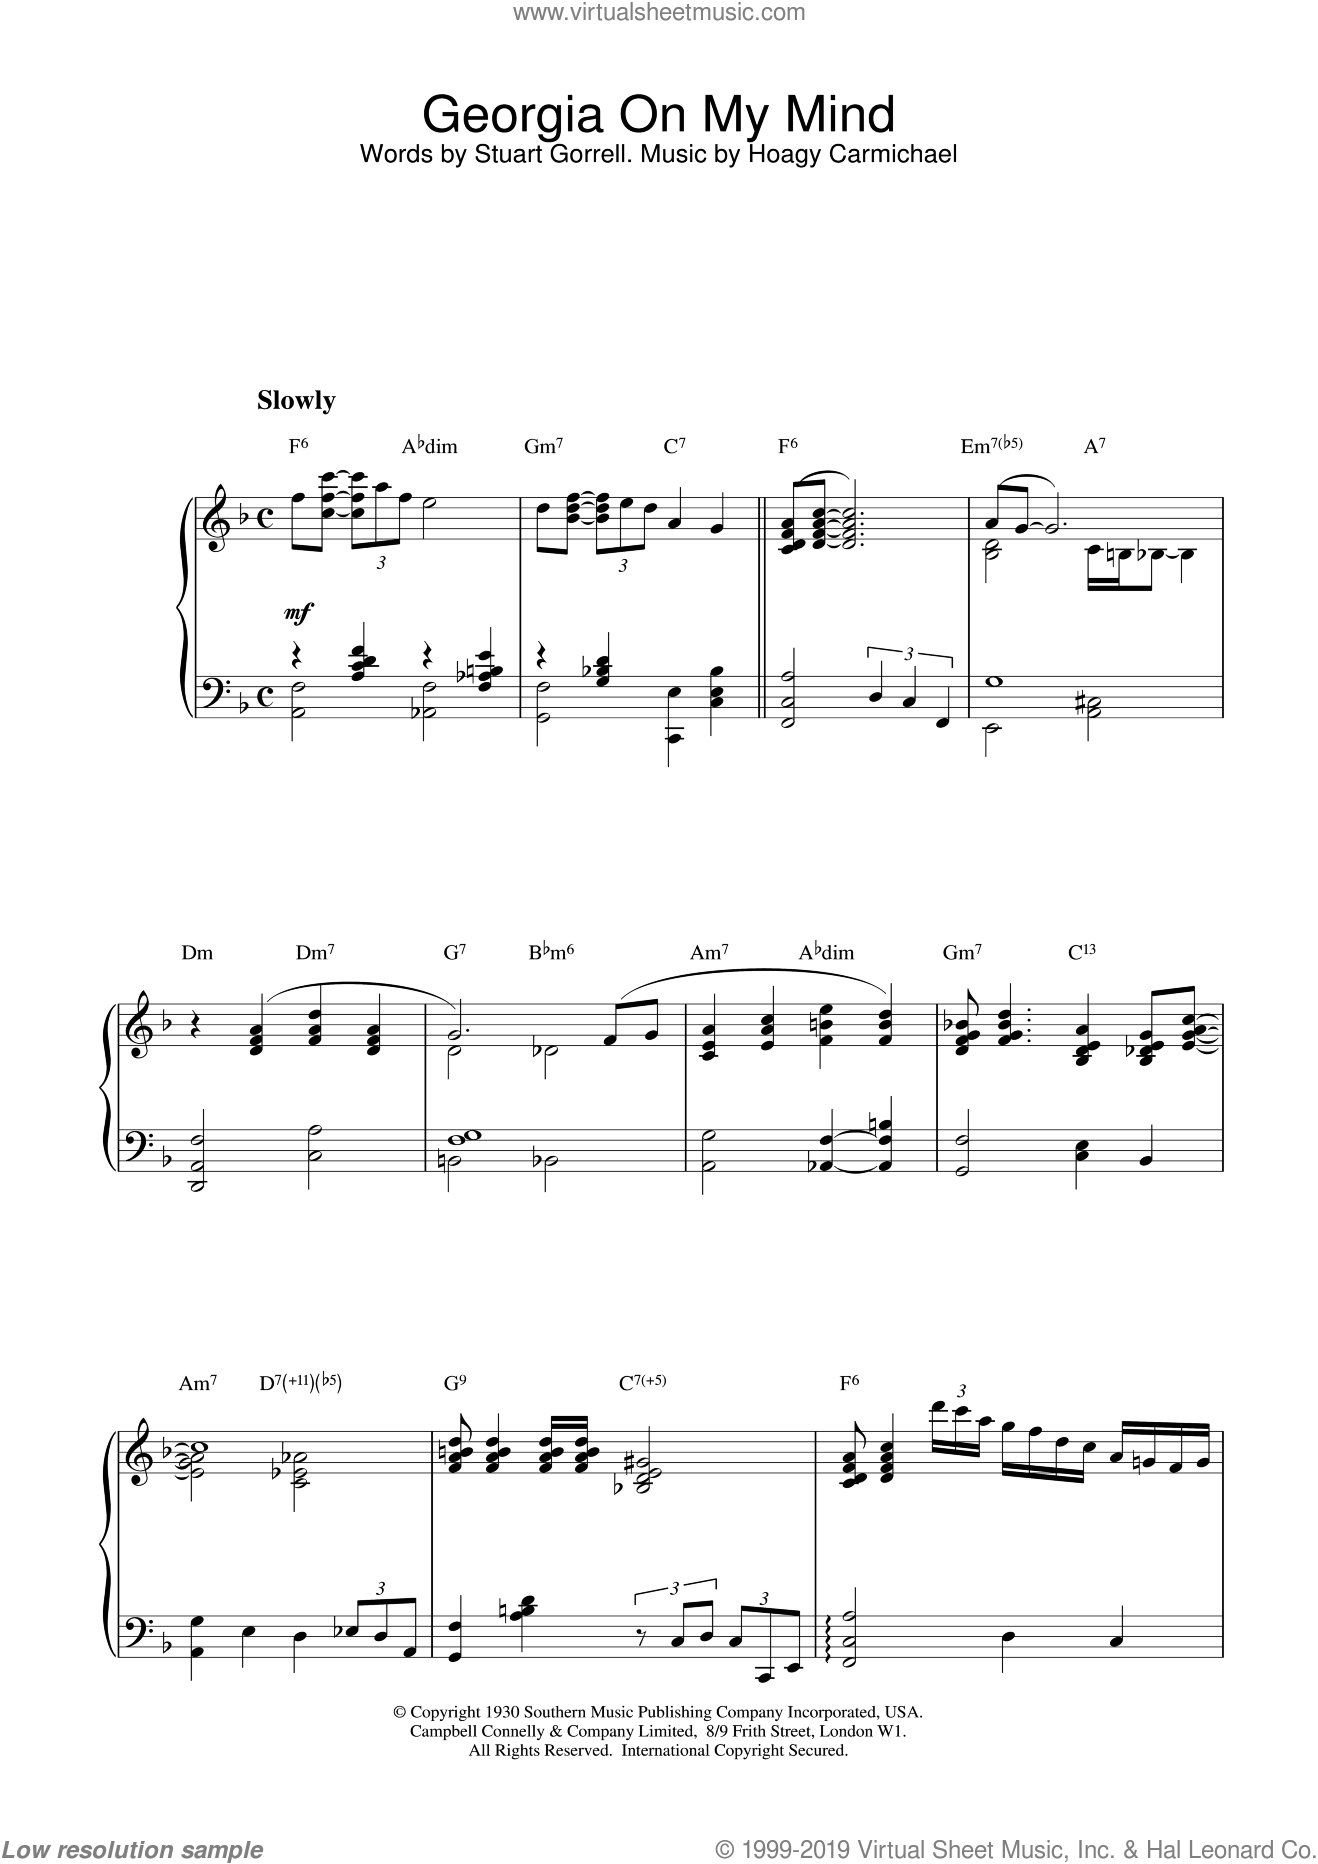 Georgia On My Mind, (intermediate) sheet music for piano solo by Hoagy Carmichael, Ray Charles, Willie Nelson and Stuart Gorrell, intermediate skill level